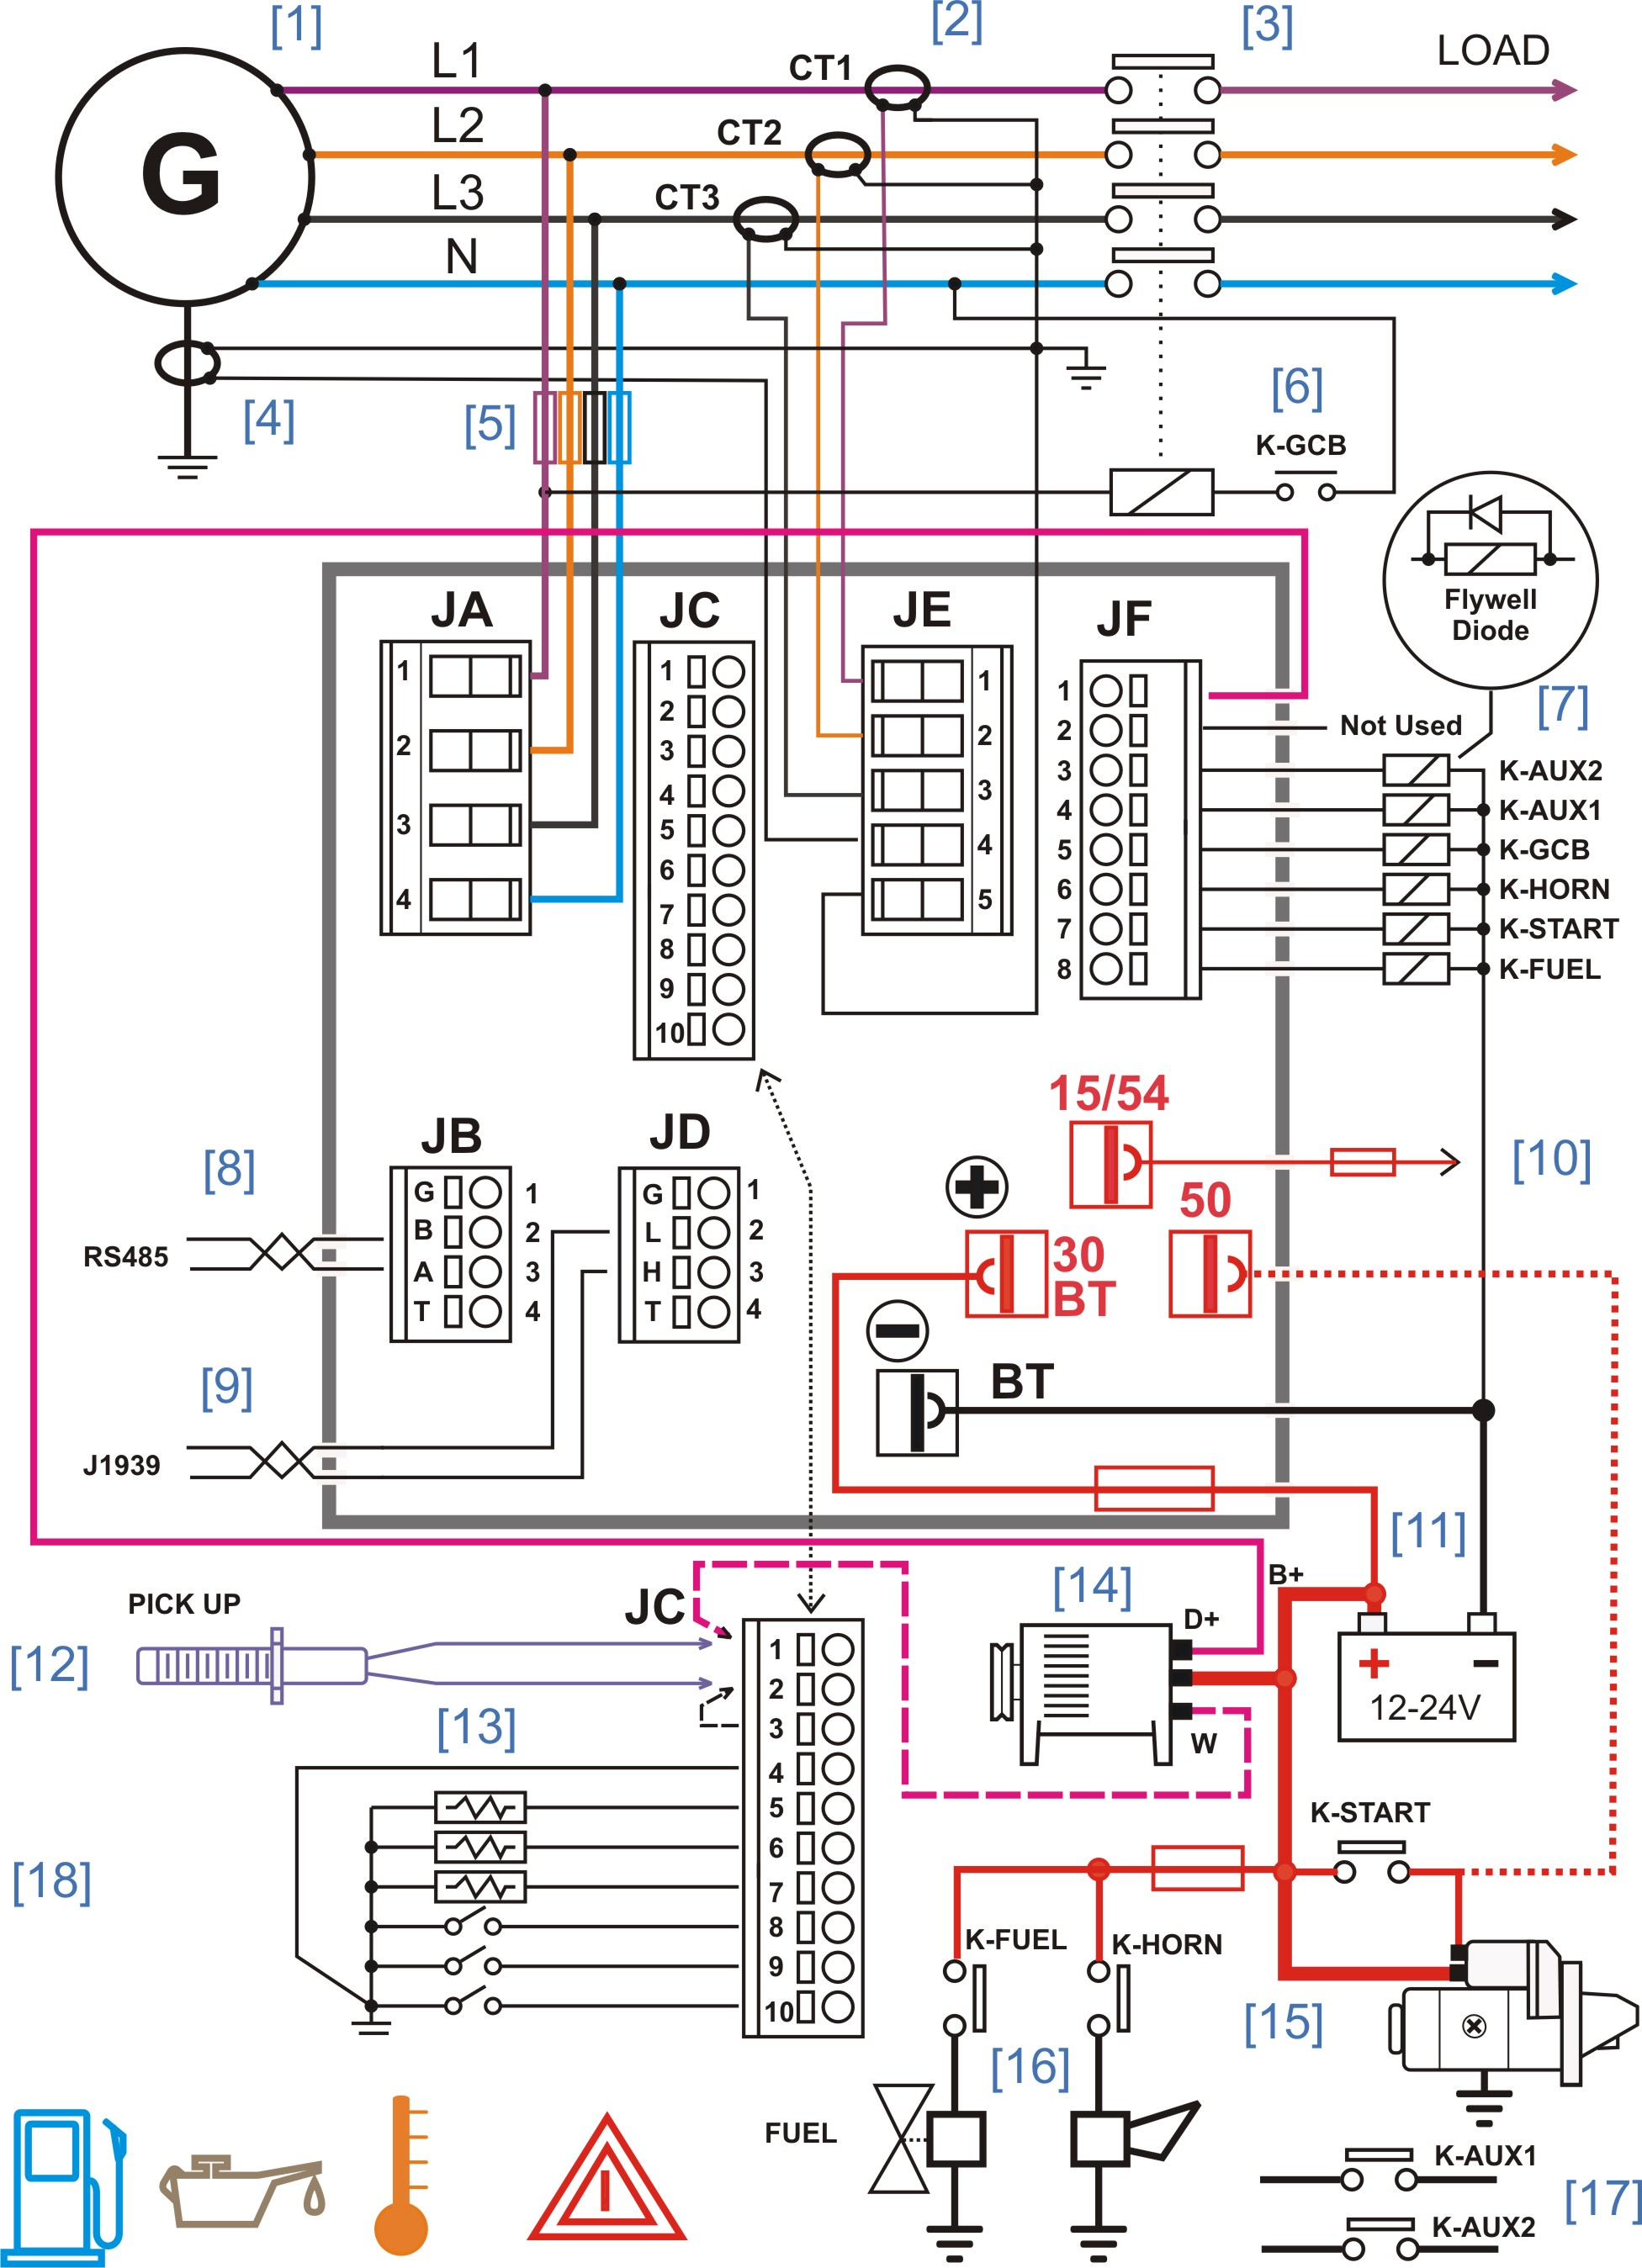 Diesel Generator Control Panel Wiring Diagram diesel generator control panel wiring diagram genset controller stamford generator wiring diagram at nearapp.co